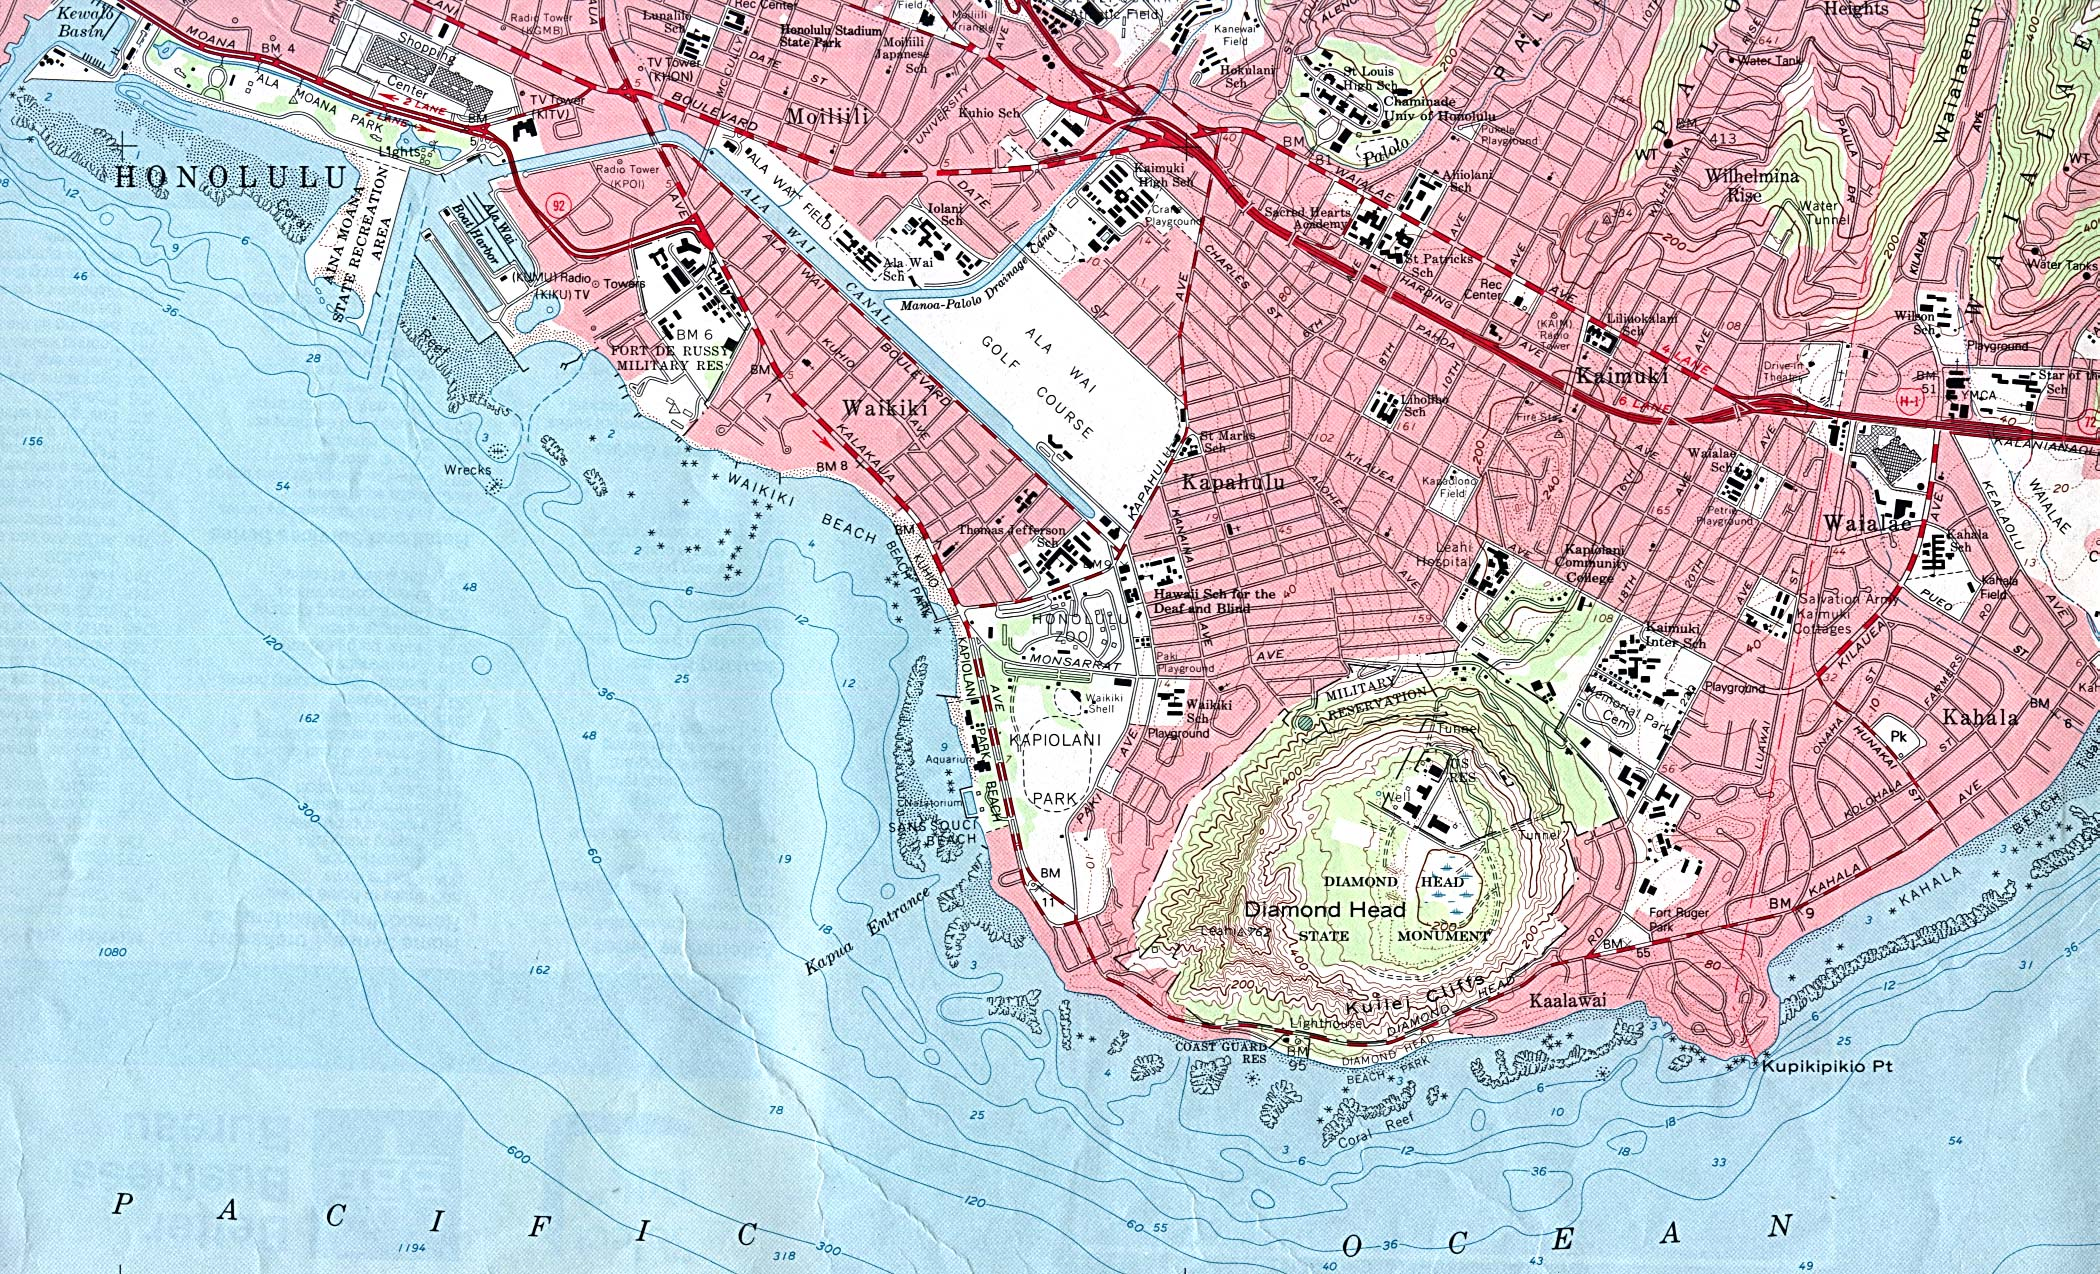 Honolulu Diamond Head/Waikiki Topographic Map, Hawaii, United States